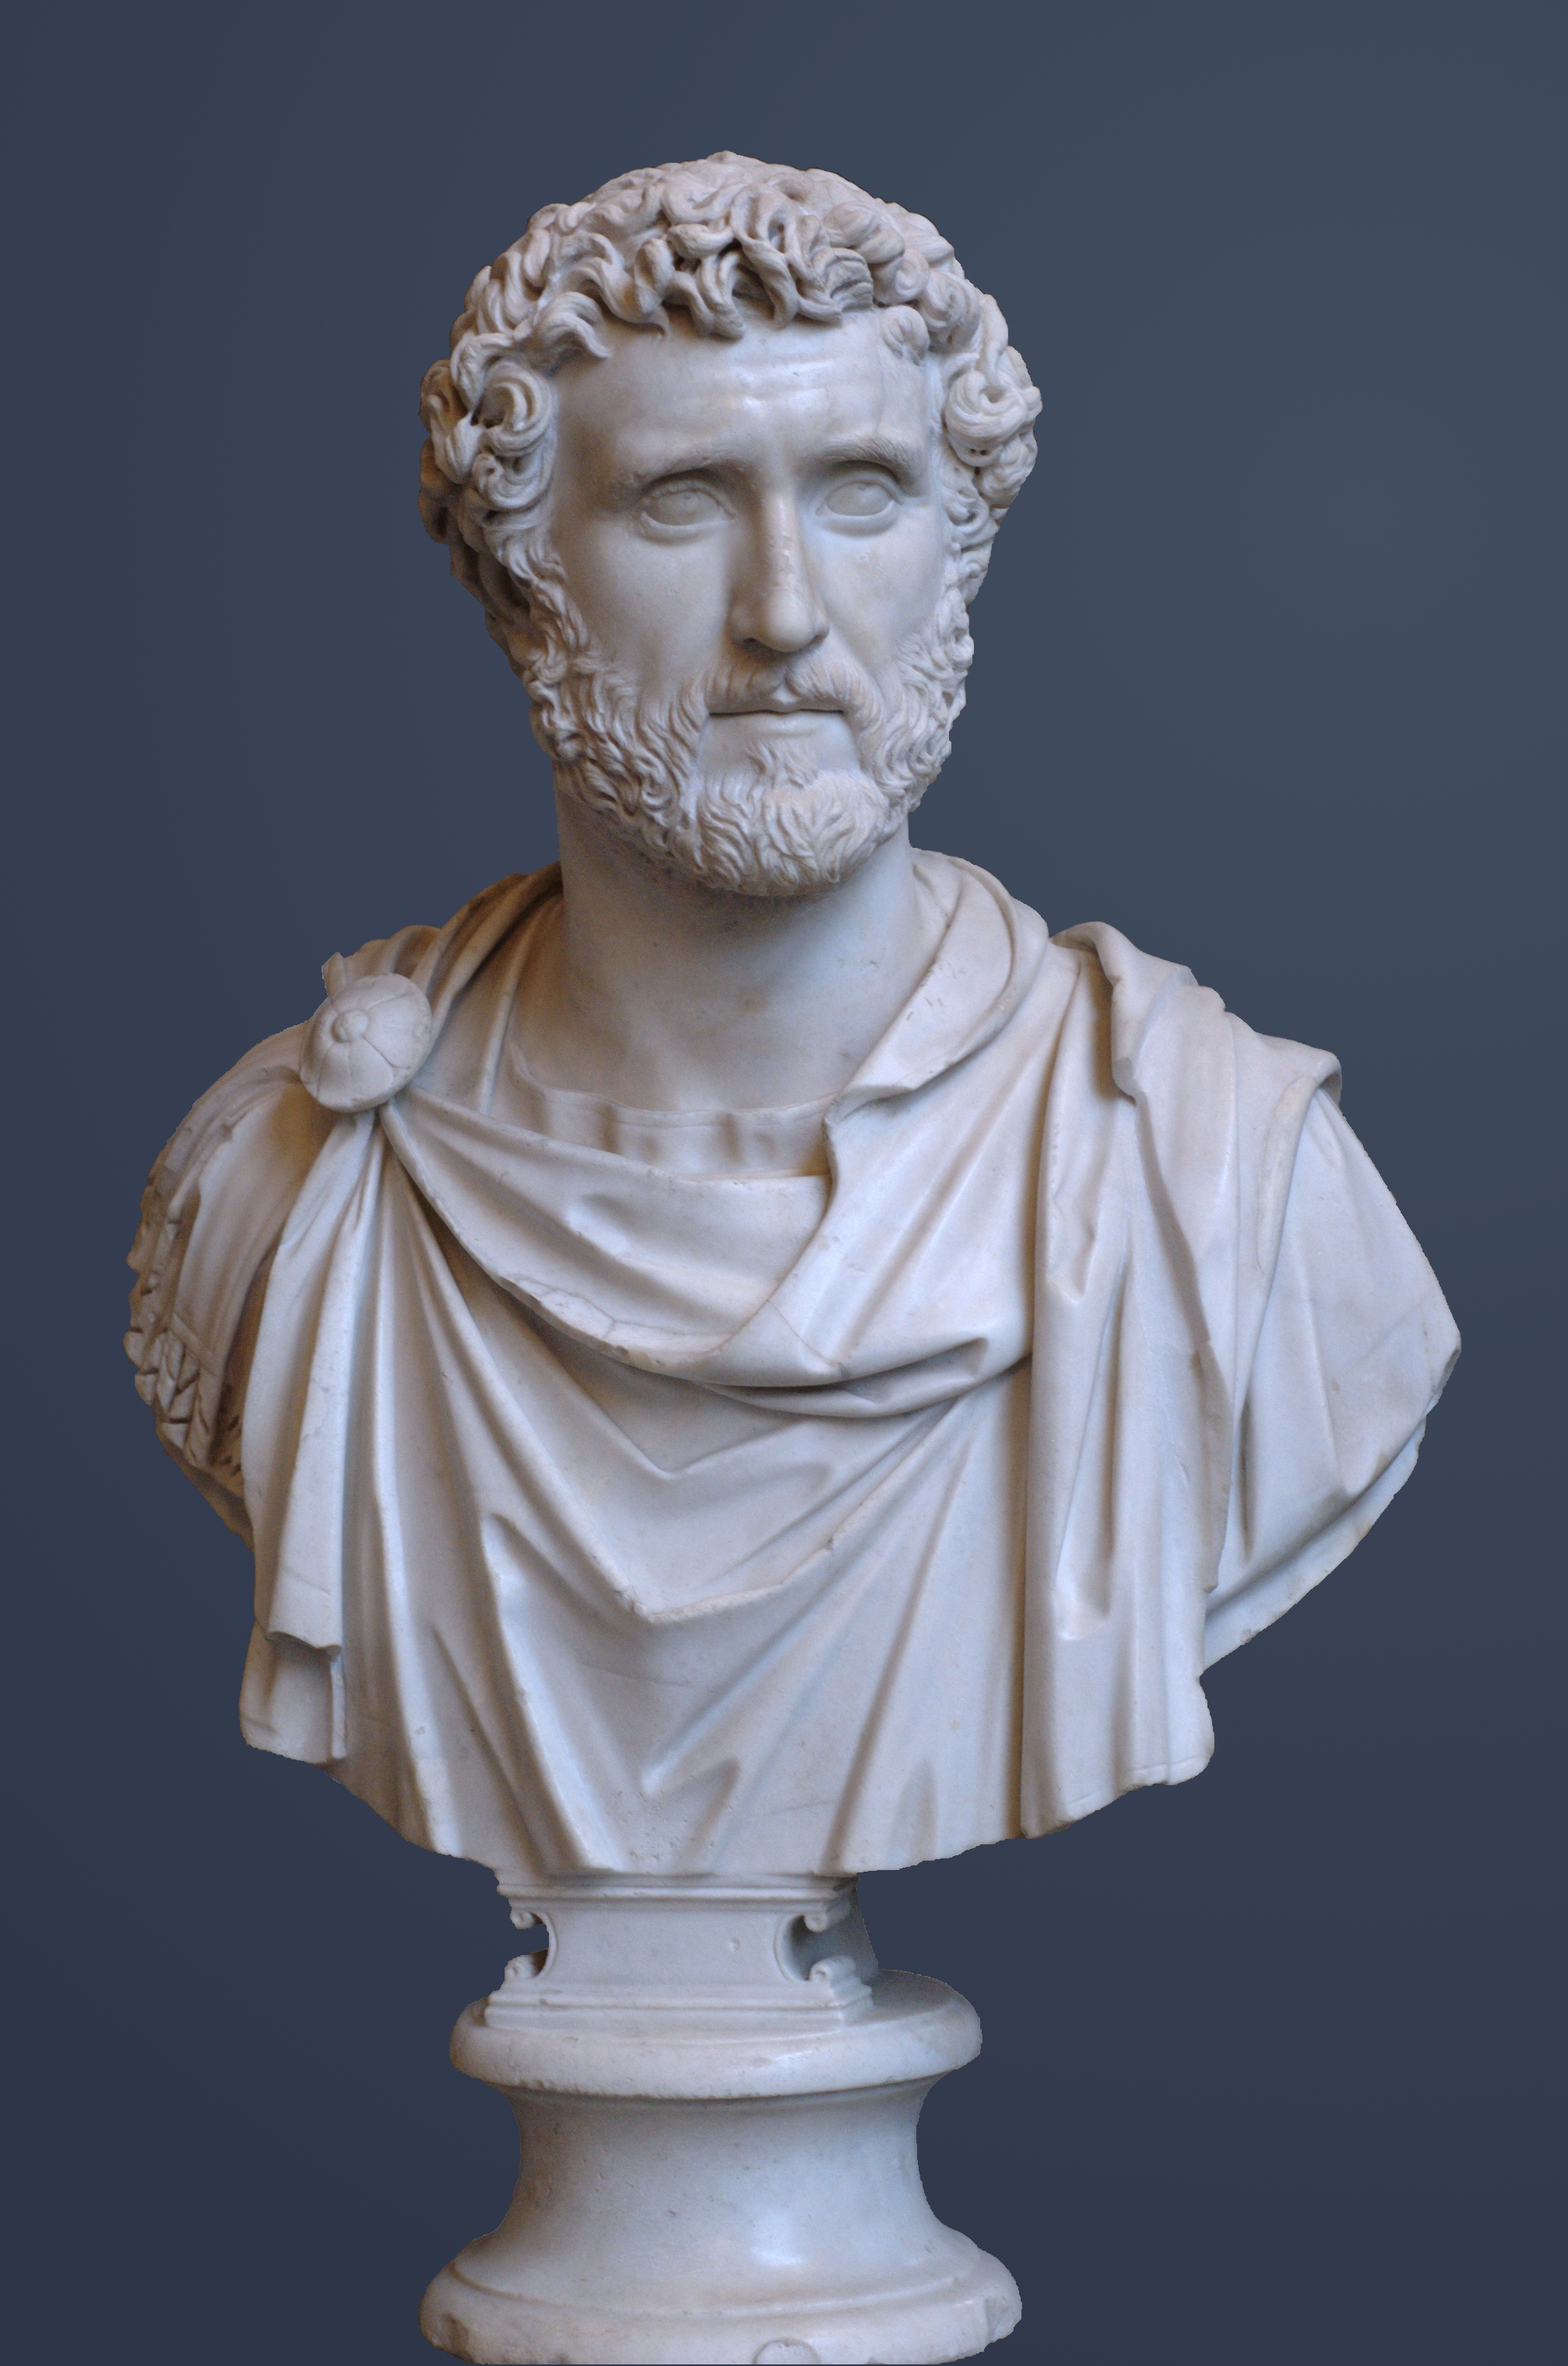 http://upload.wikimedia.org/wikipedia/commons/d/d1/Antoninus_Pius_Glyptothek_Munich_337.jpg